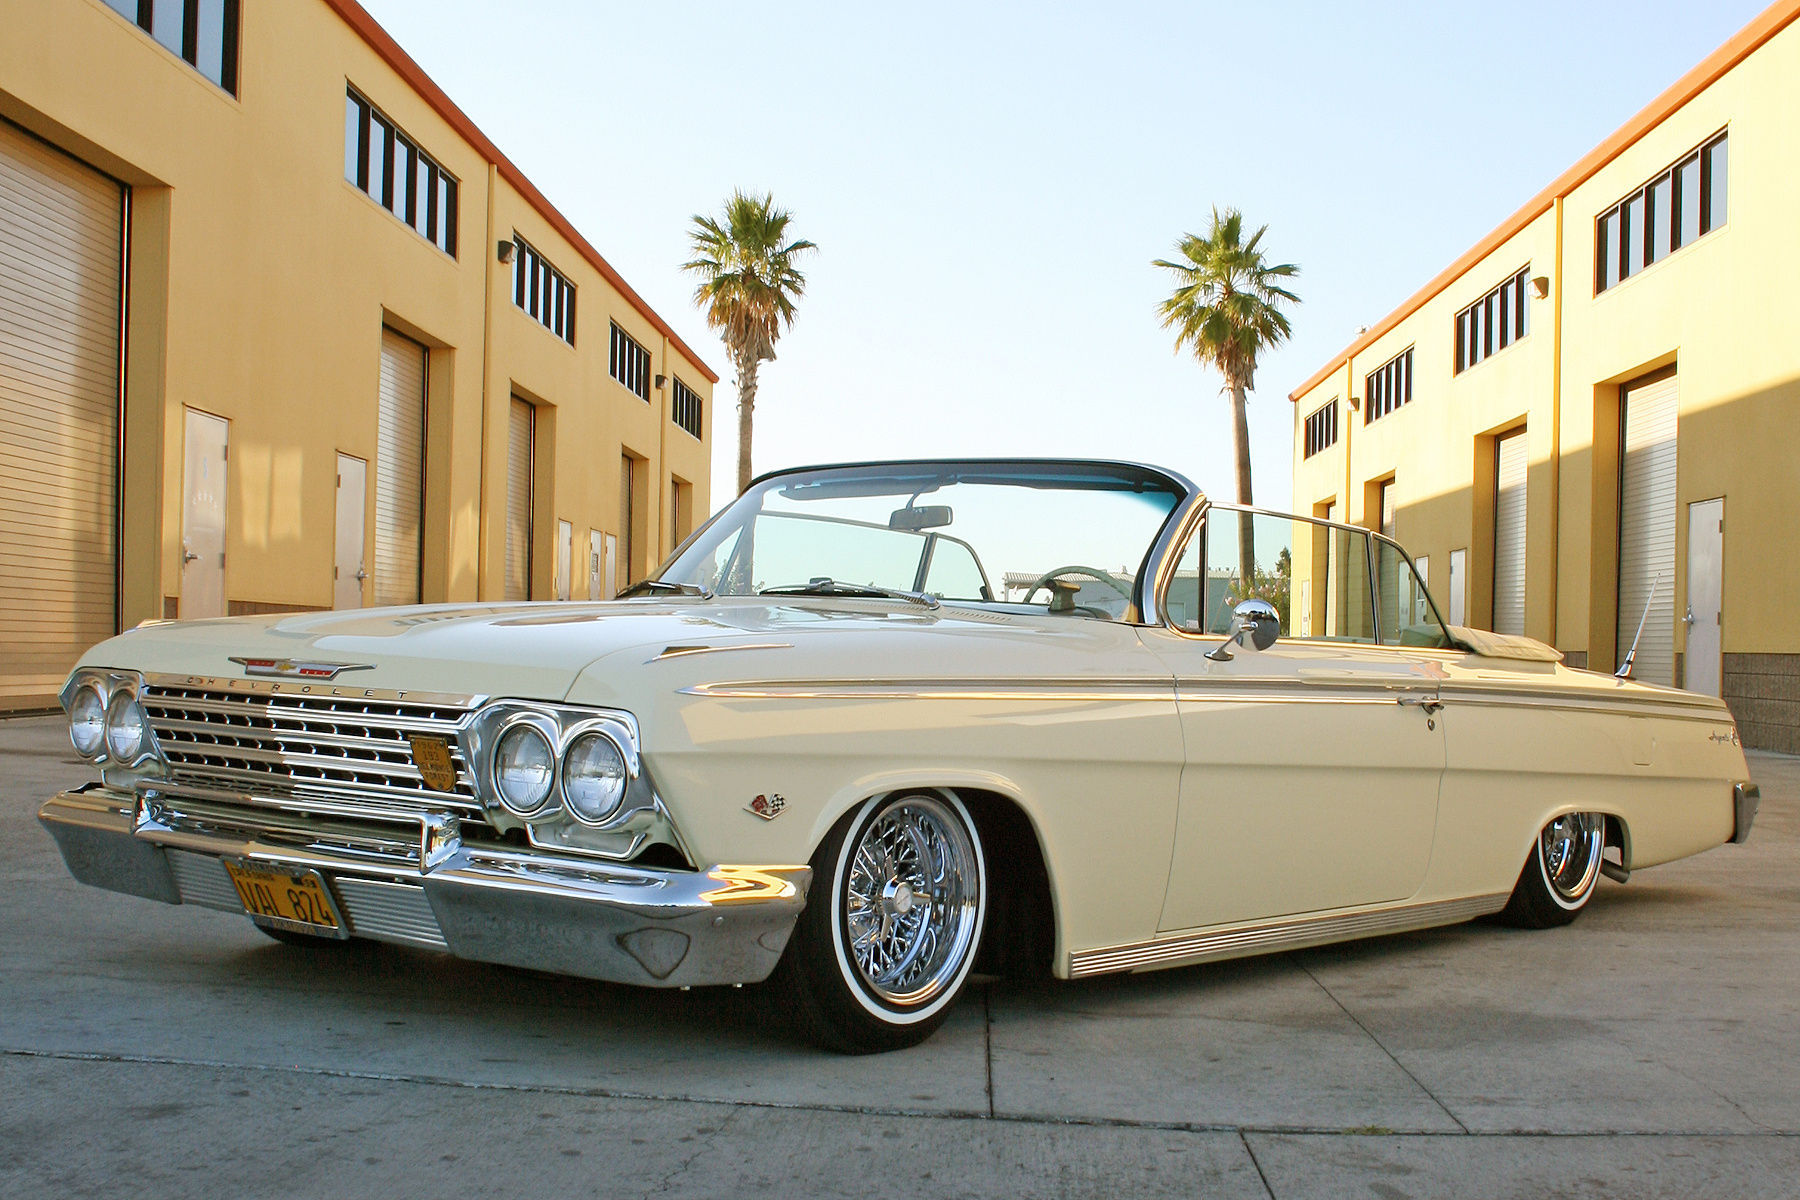 1962 Chevrolet Impala | Big Watcha's 1962 Impala Convertible